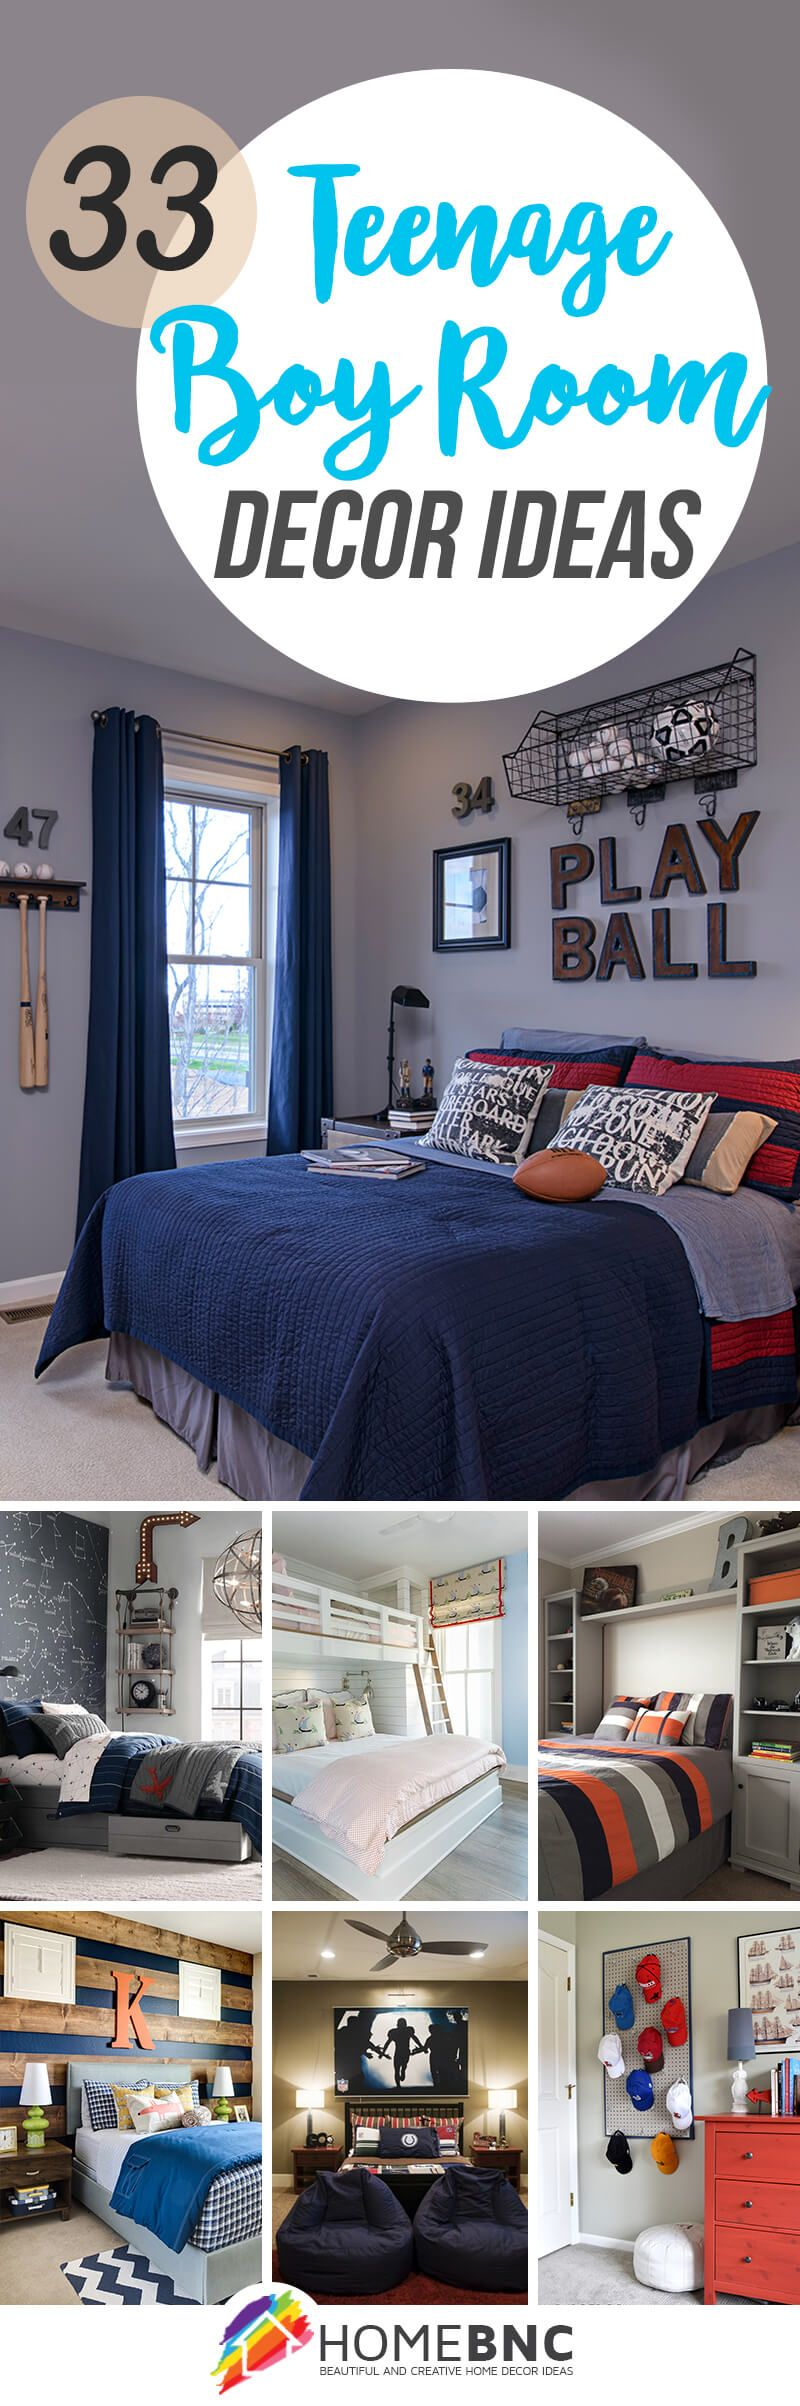 33 Cool Teenage Boy Room Decor Ideas Teenage Boy Room Boys Room Decor Boy Room